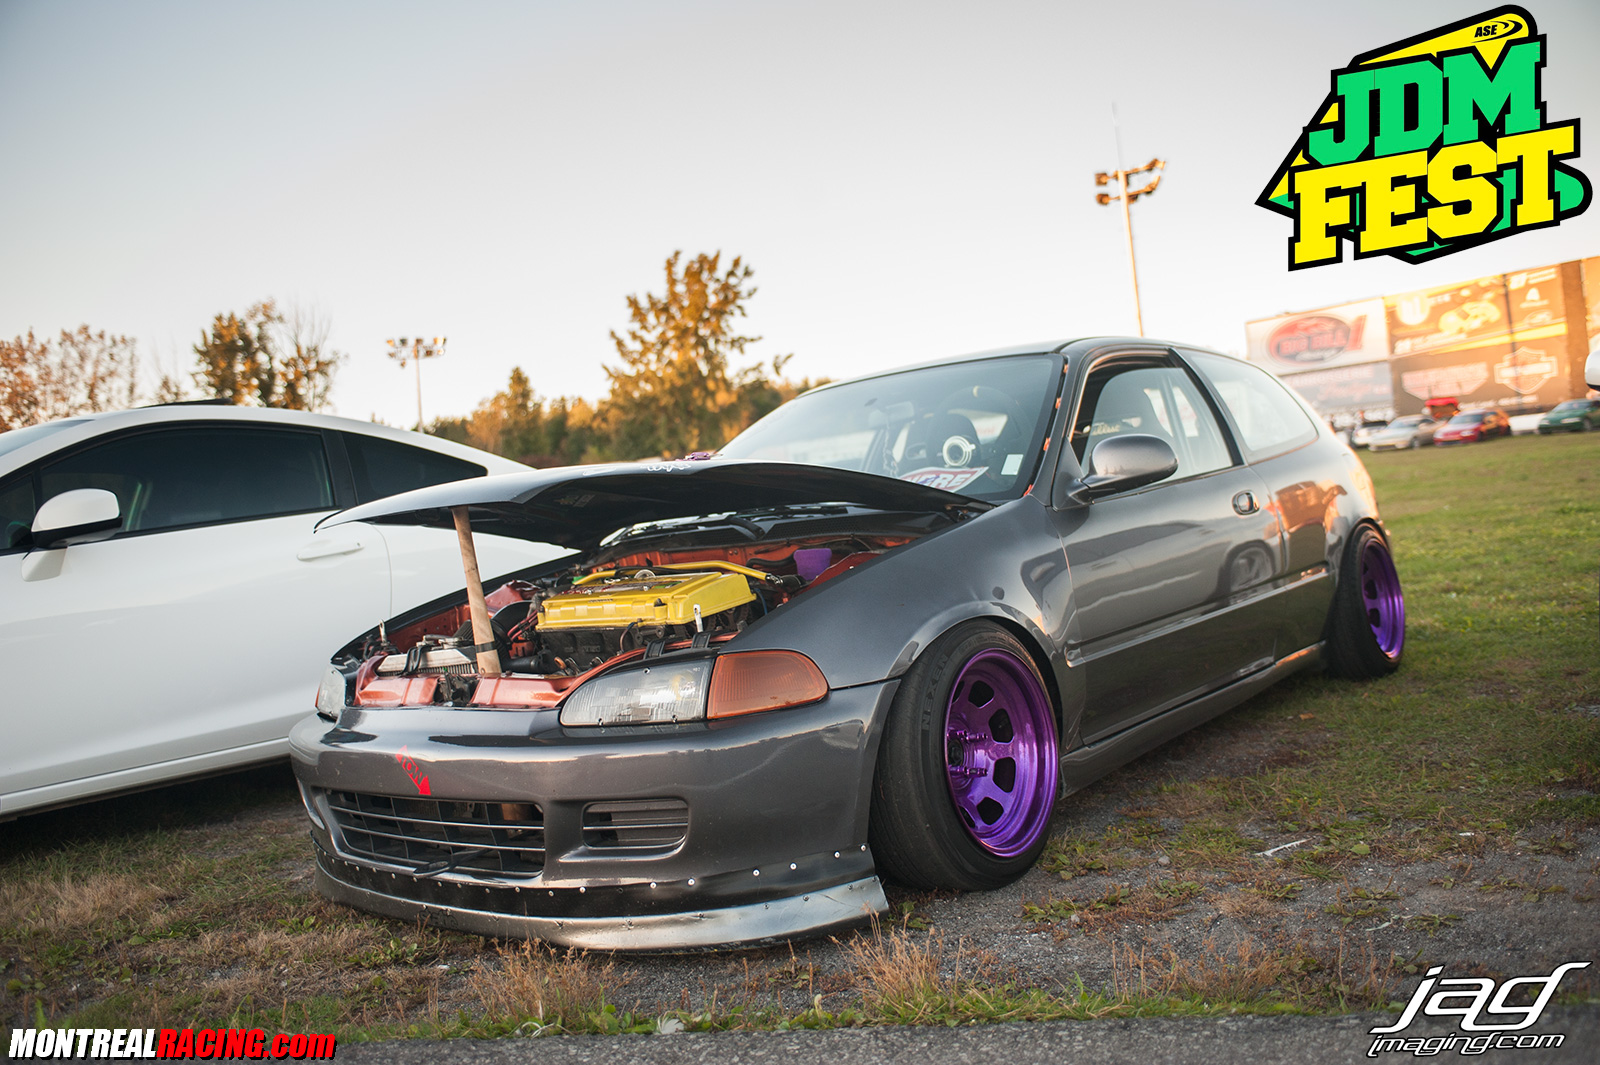 Images of Jdm Cars Seattle - #rock-cafe